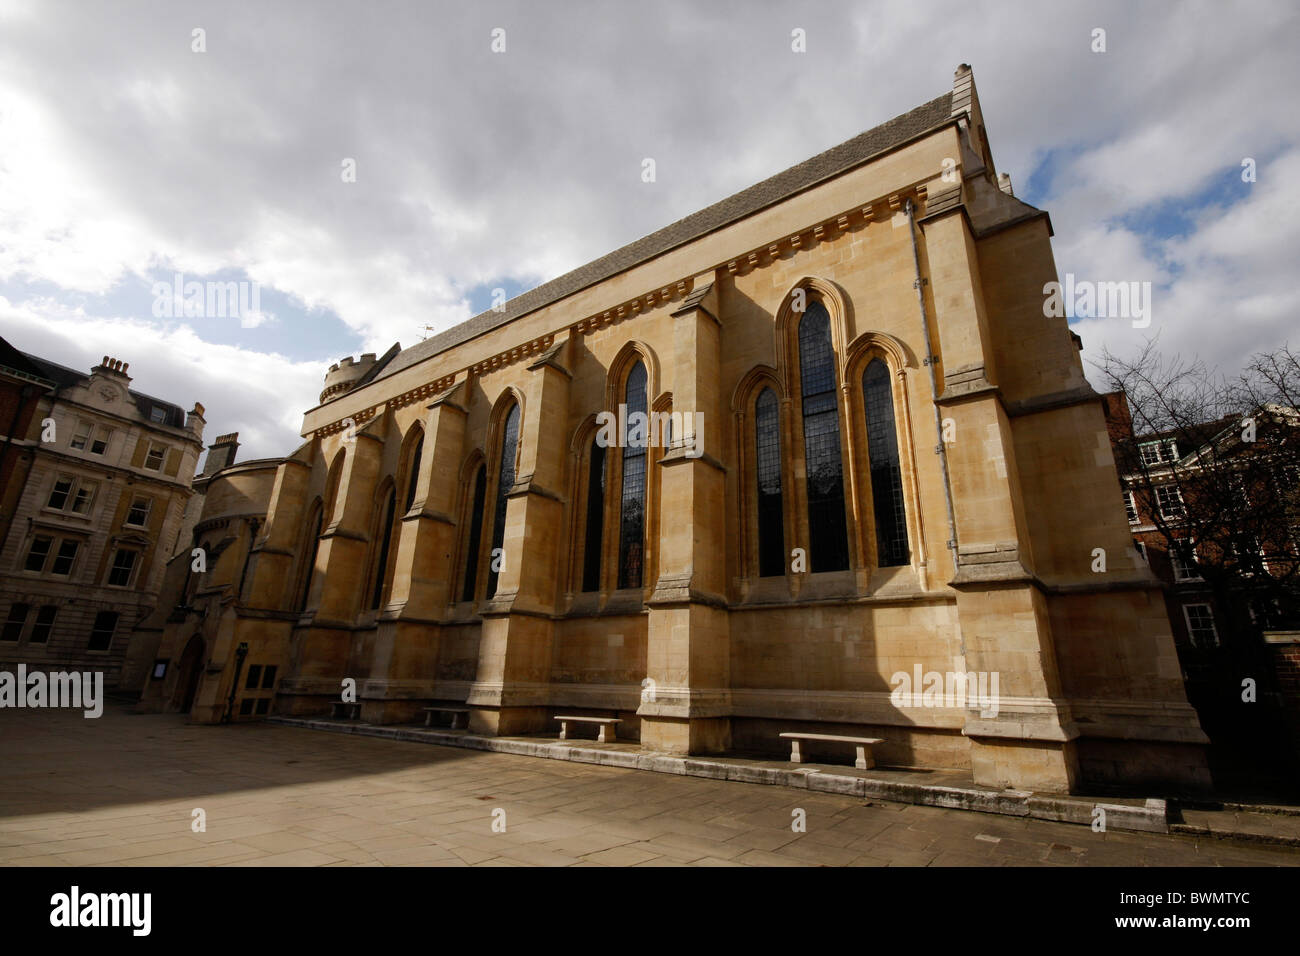 The Temple Church in London, near Fleet Street which featured in the book and film, The Da Vinci Code - Stock Image